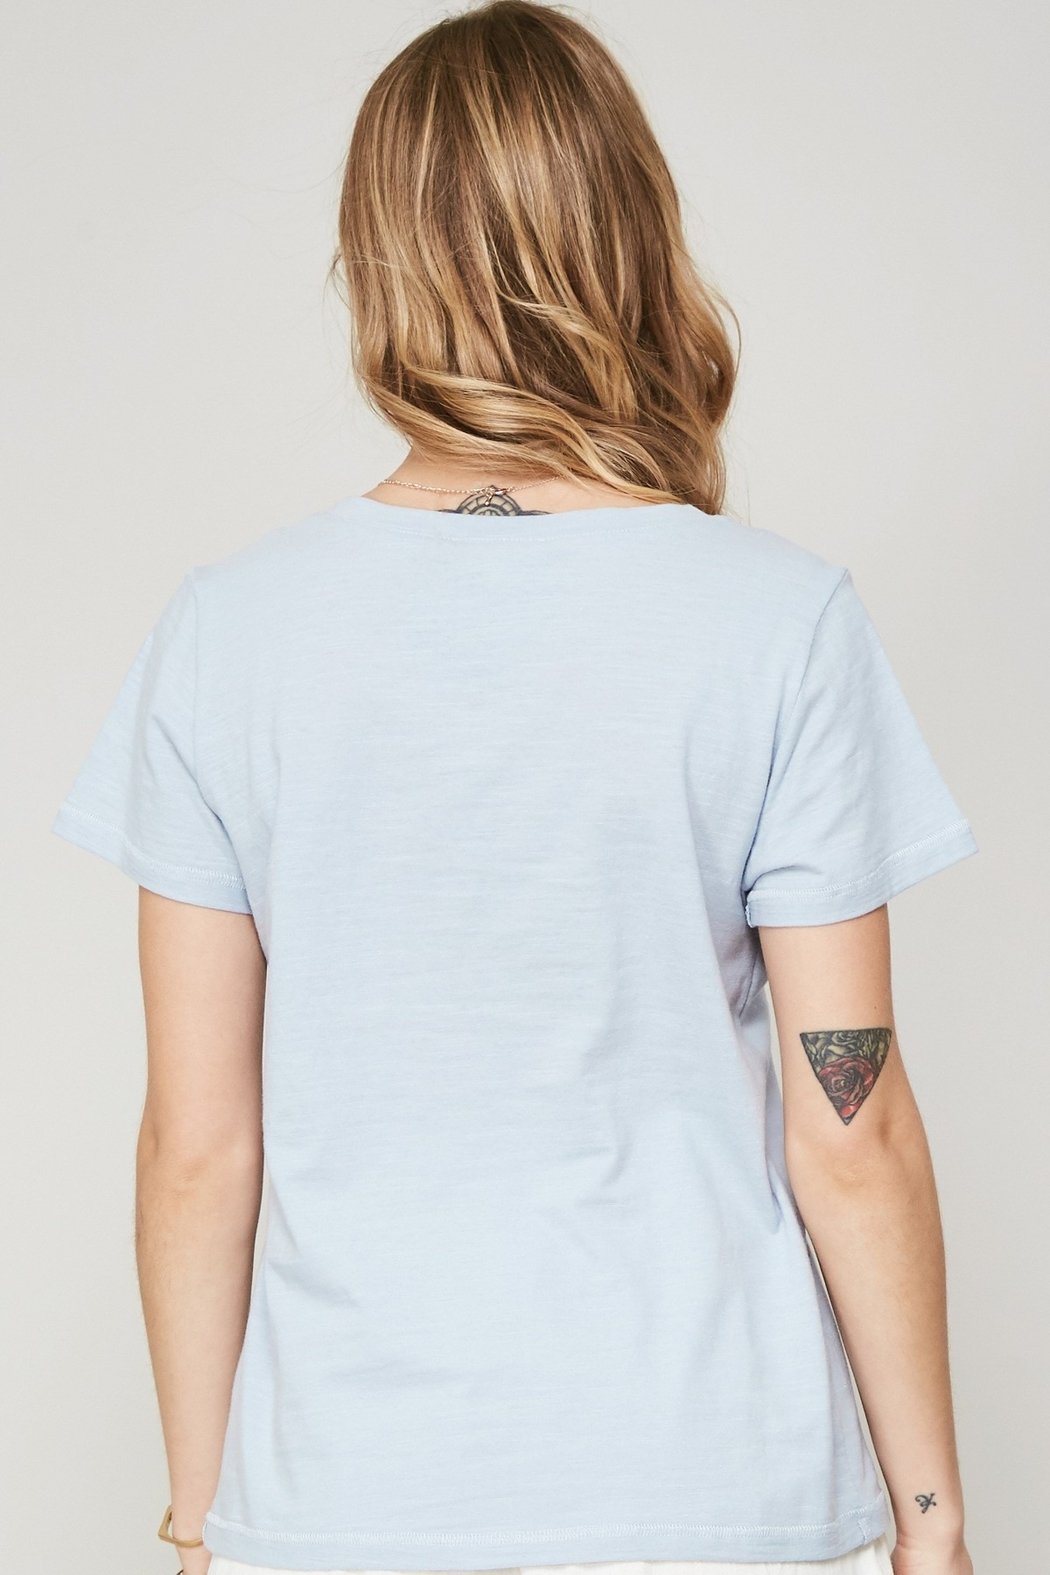 Promesa  Embroidered Heart Tee - Front Full Image